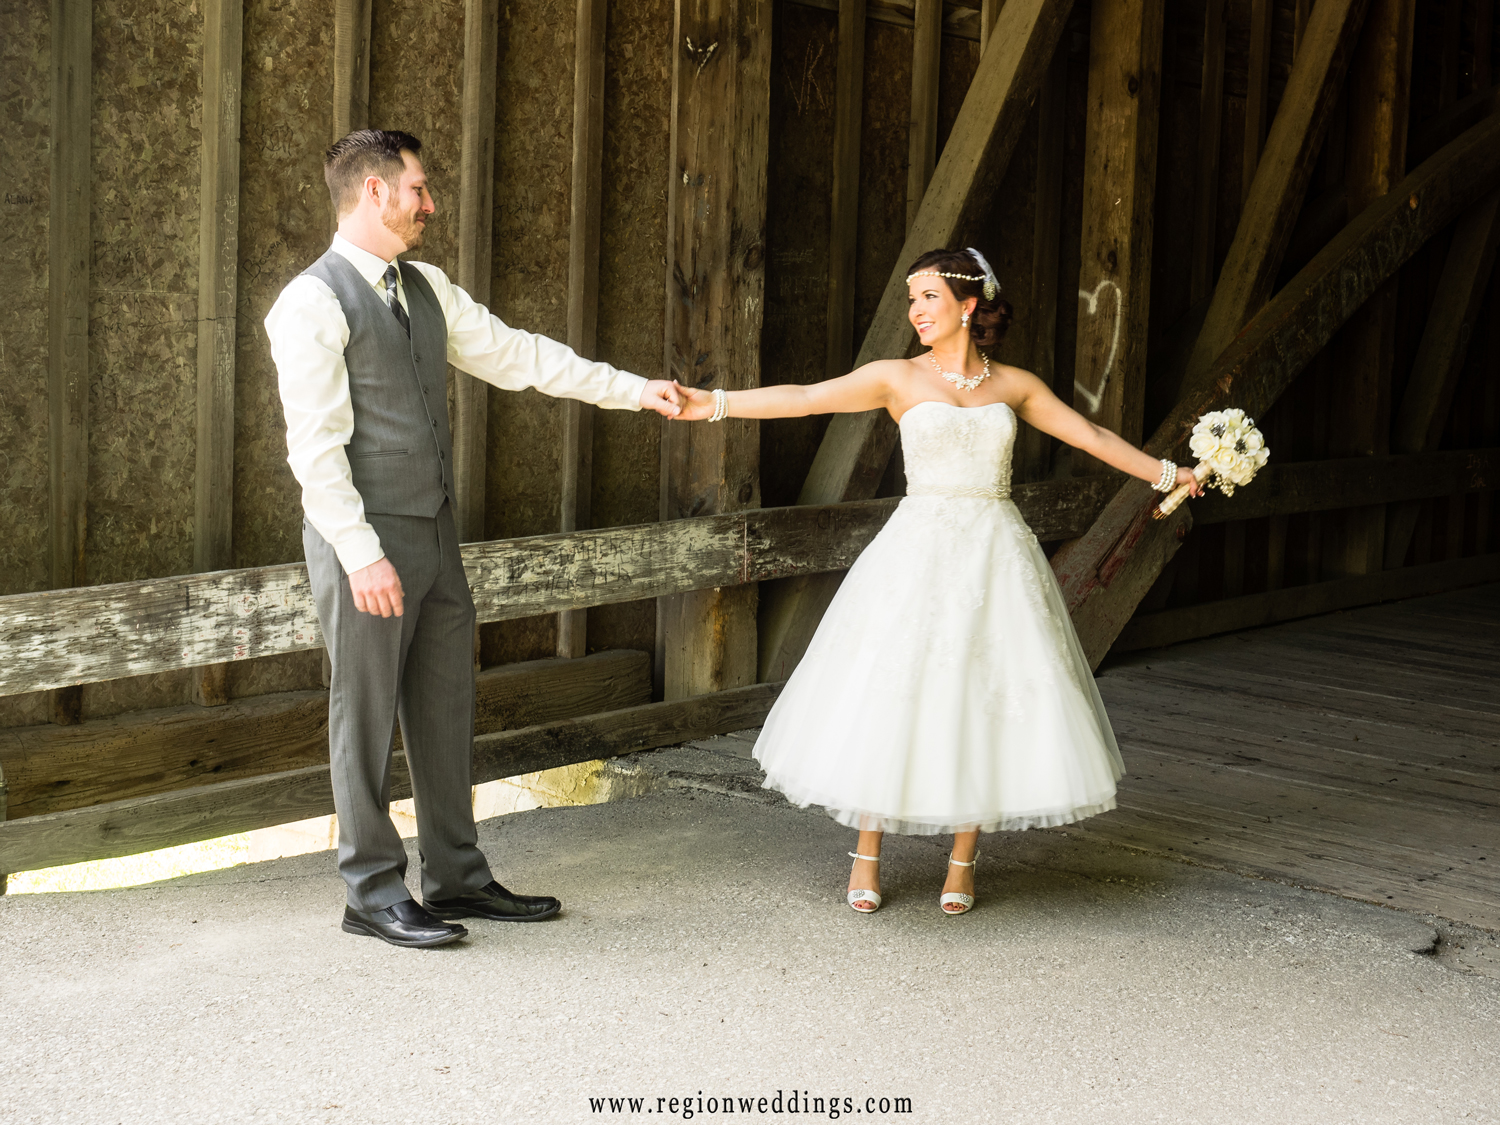 A playful dance between bride and groom after their first look.